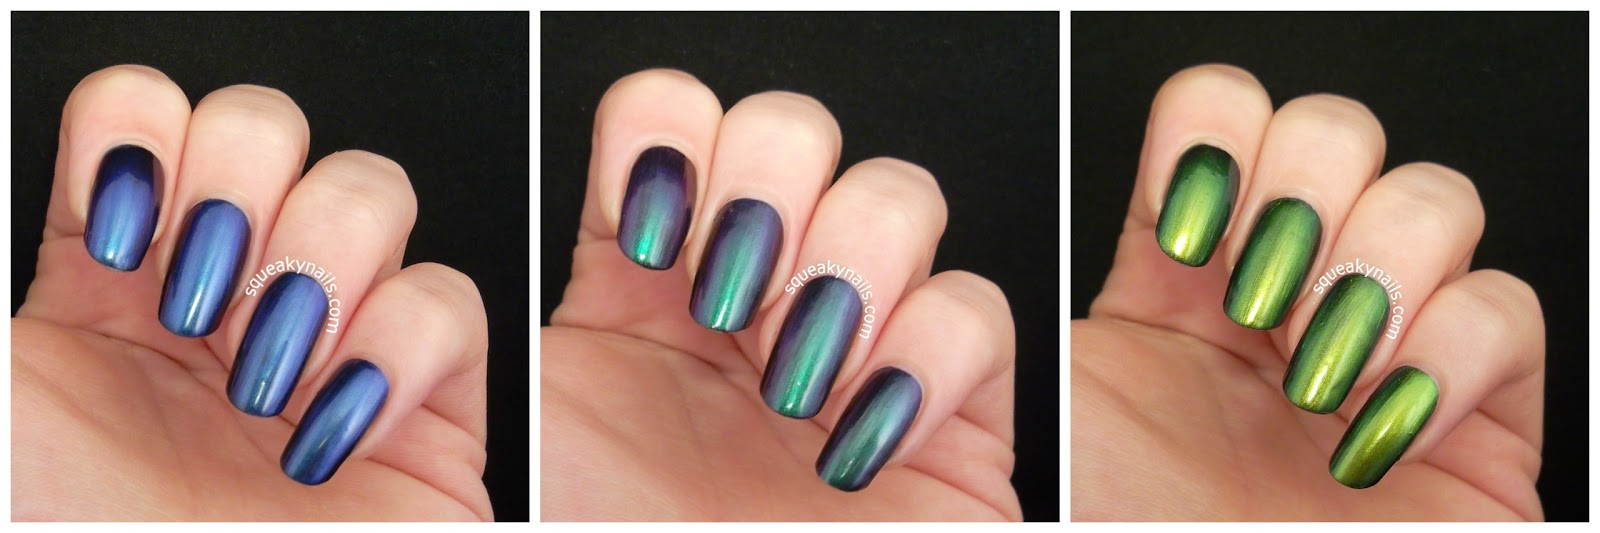 Doctor Lacquer Chromozones; The Smoke that Thunders, The Dance of the Spirits and The World of the Coral Sea swatches and review | Squeaky Nails